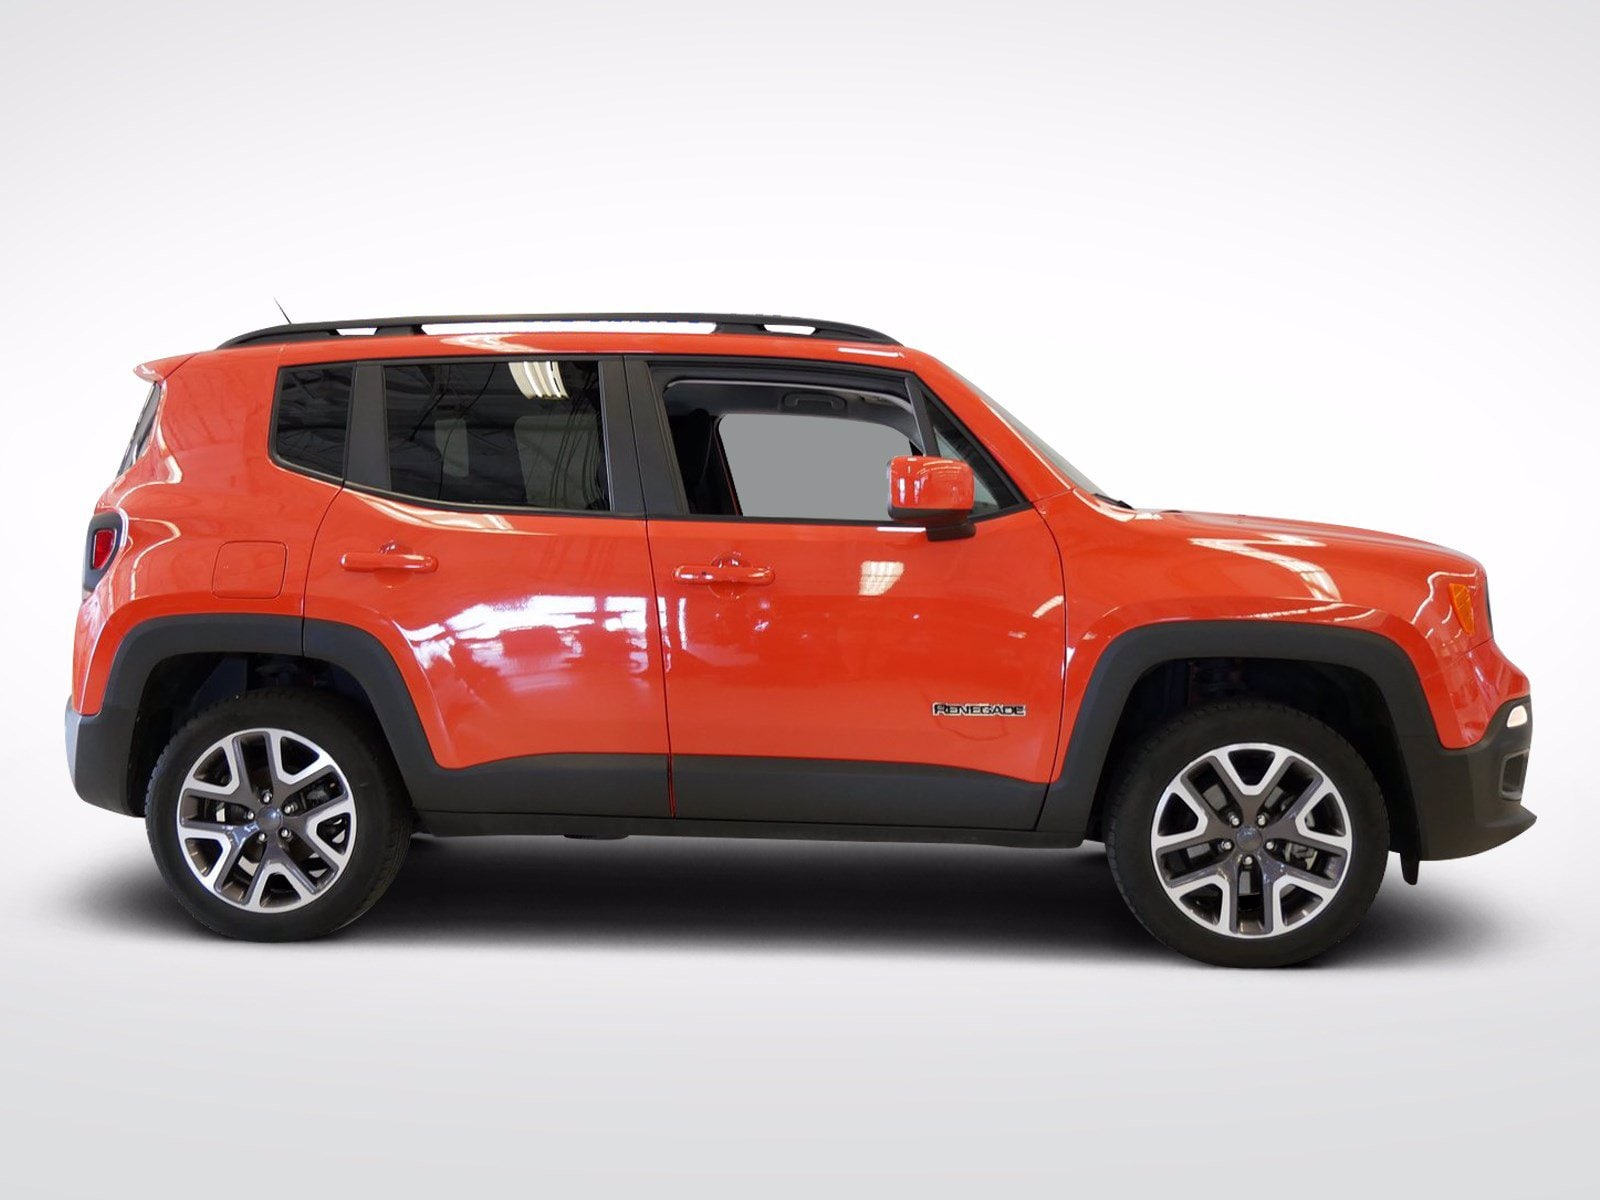 Used 2017 Jeep Renegade Latitude with VIN ZACCJBBB7HPF74623 for sale in Baxter, Minnesota